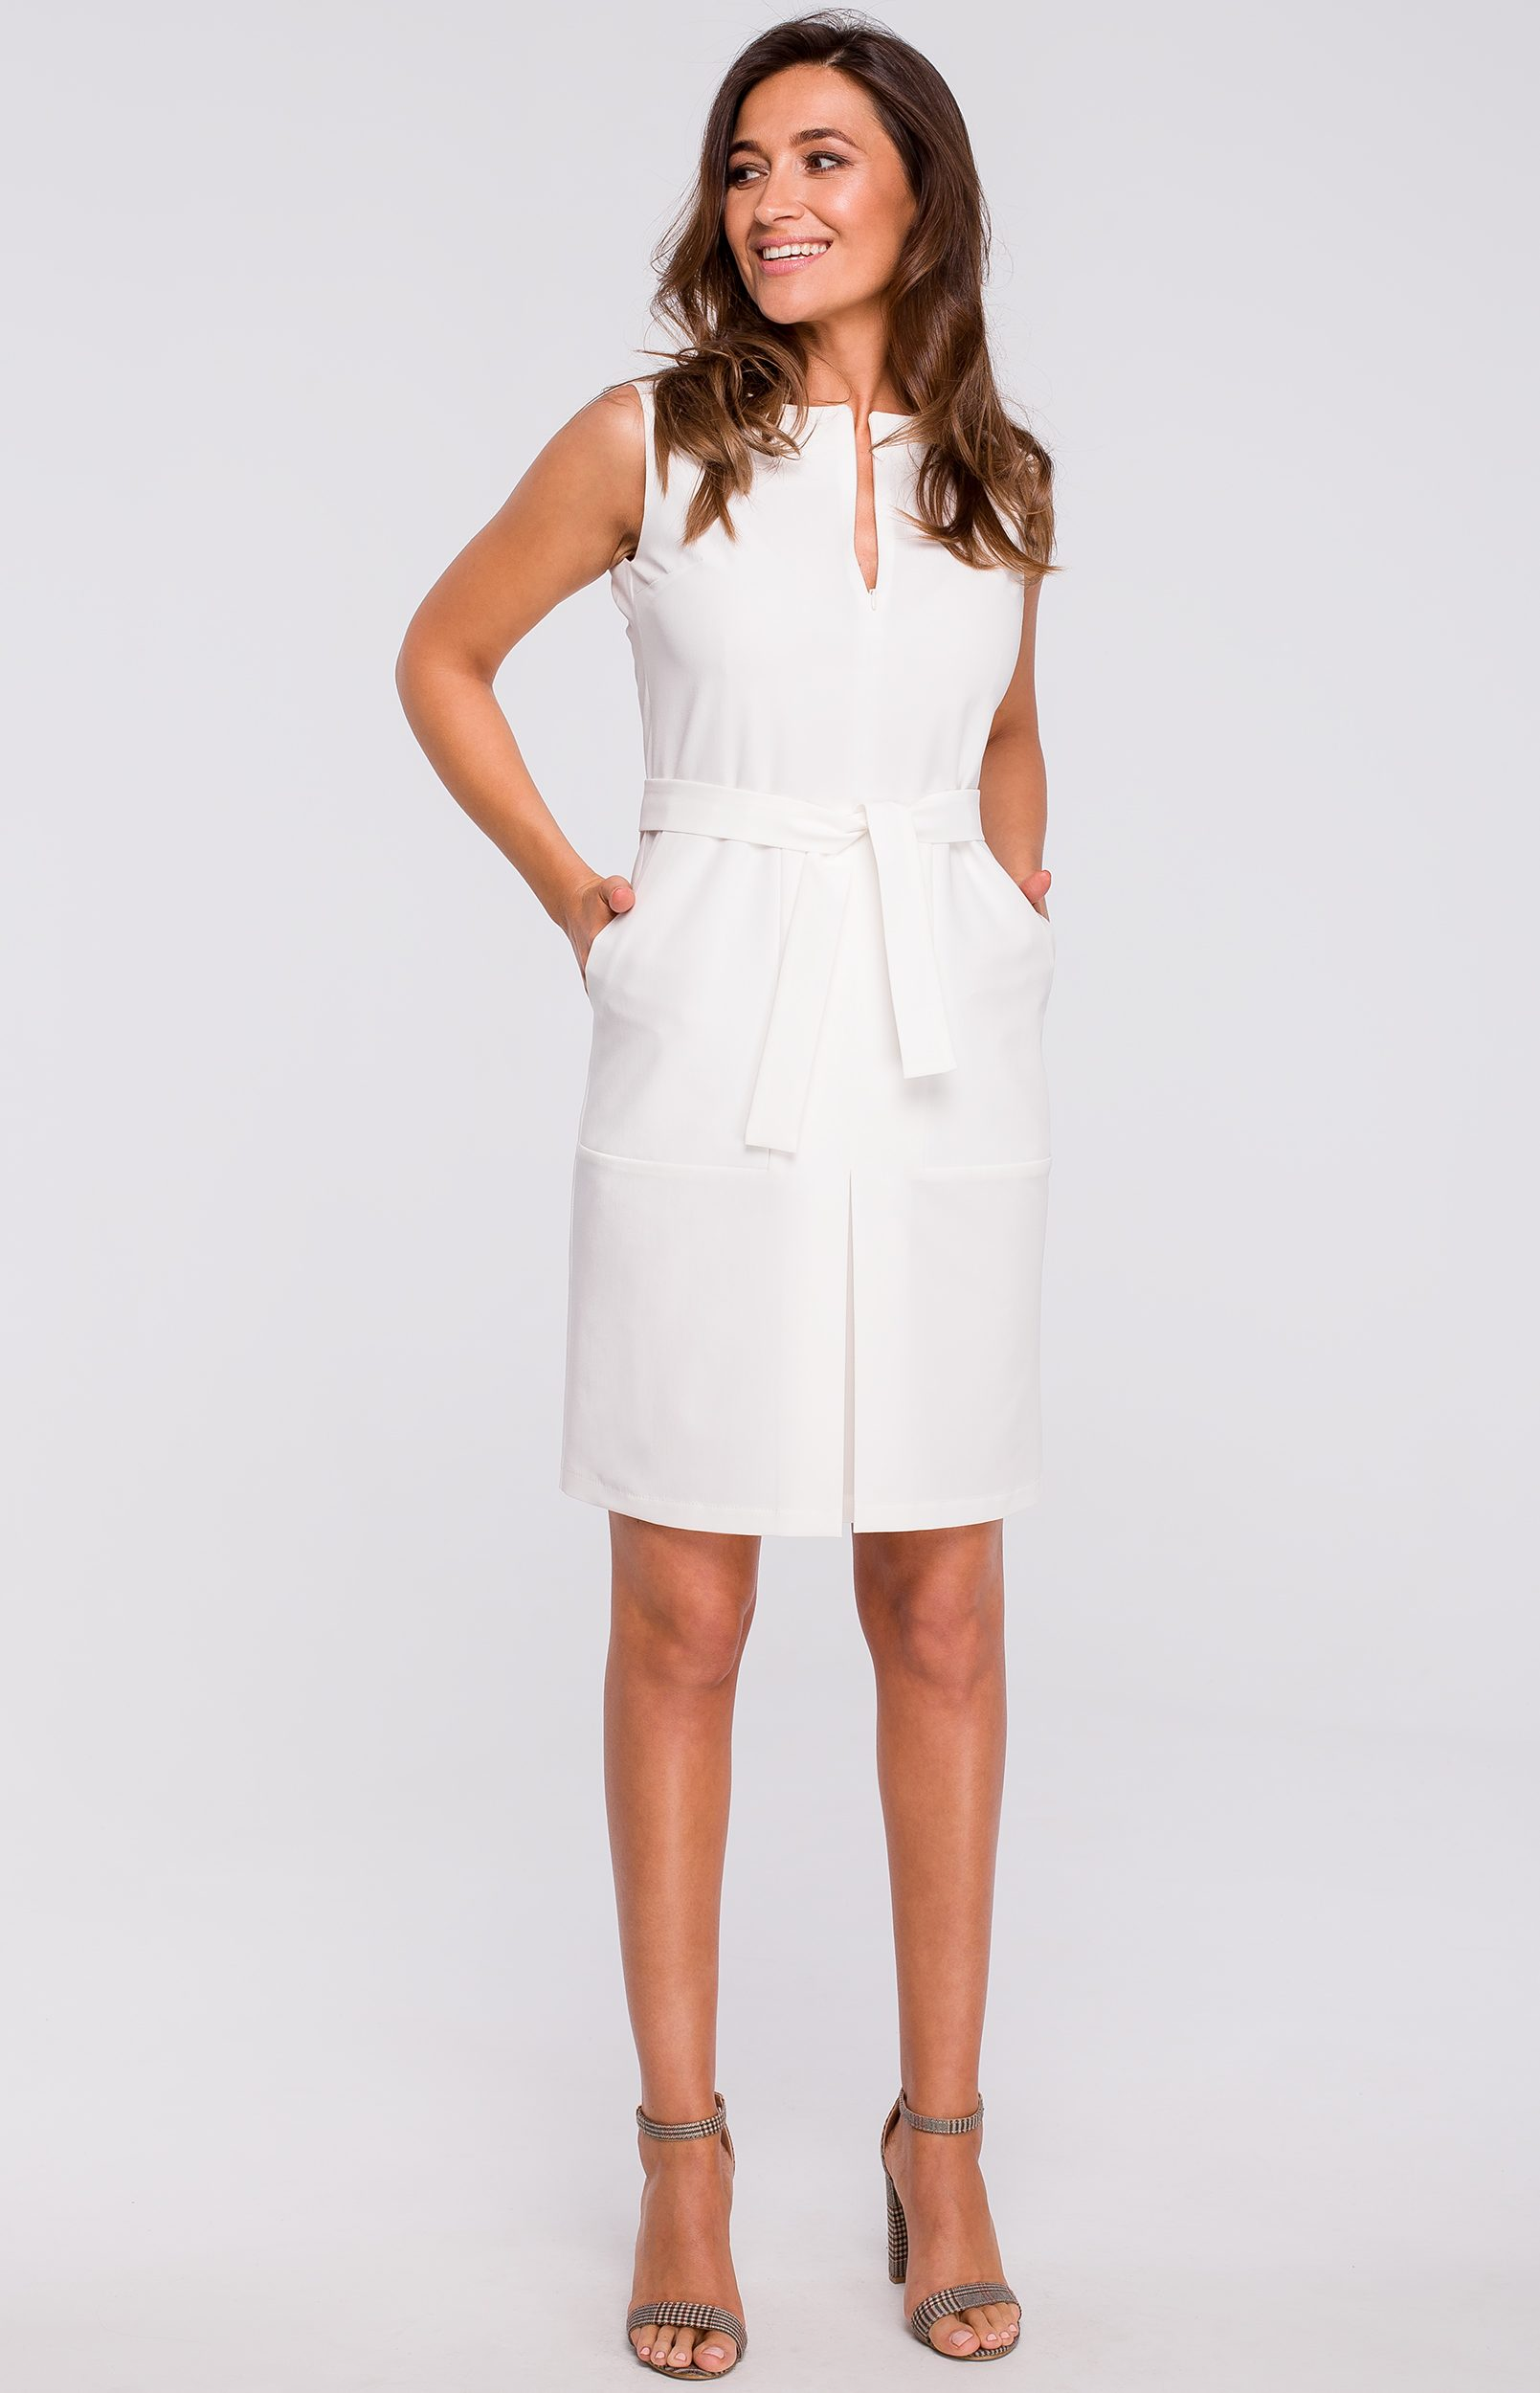 Robe fourreau blanche